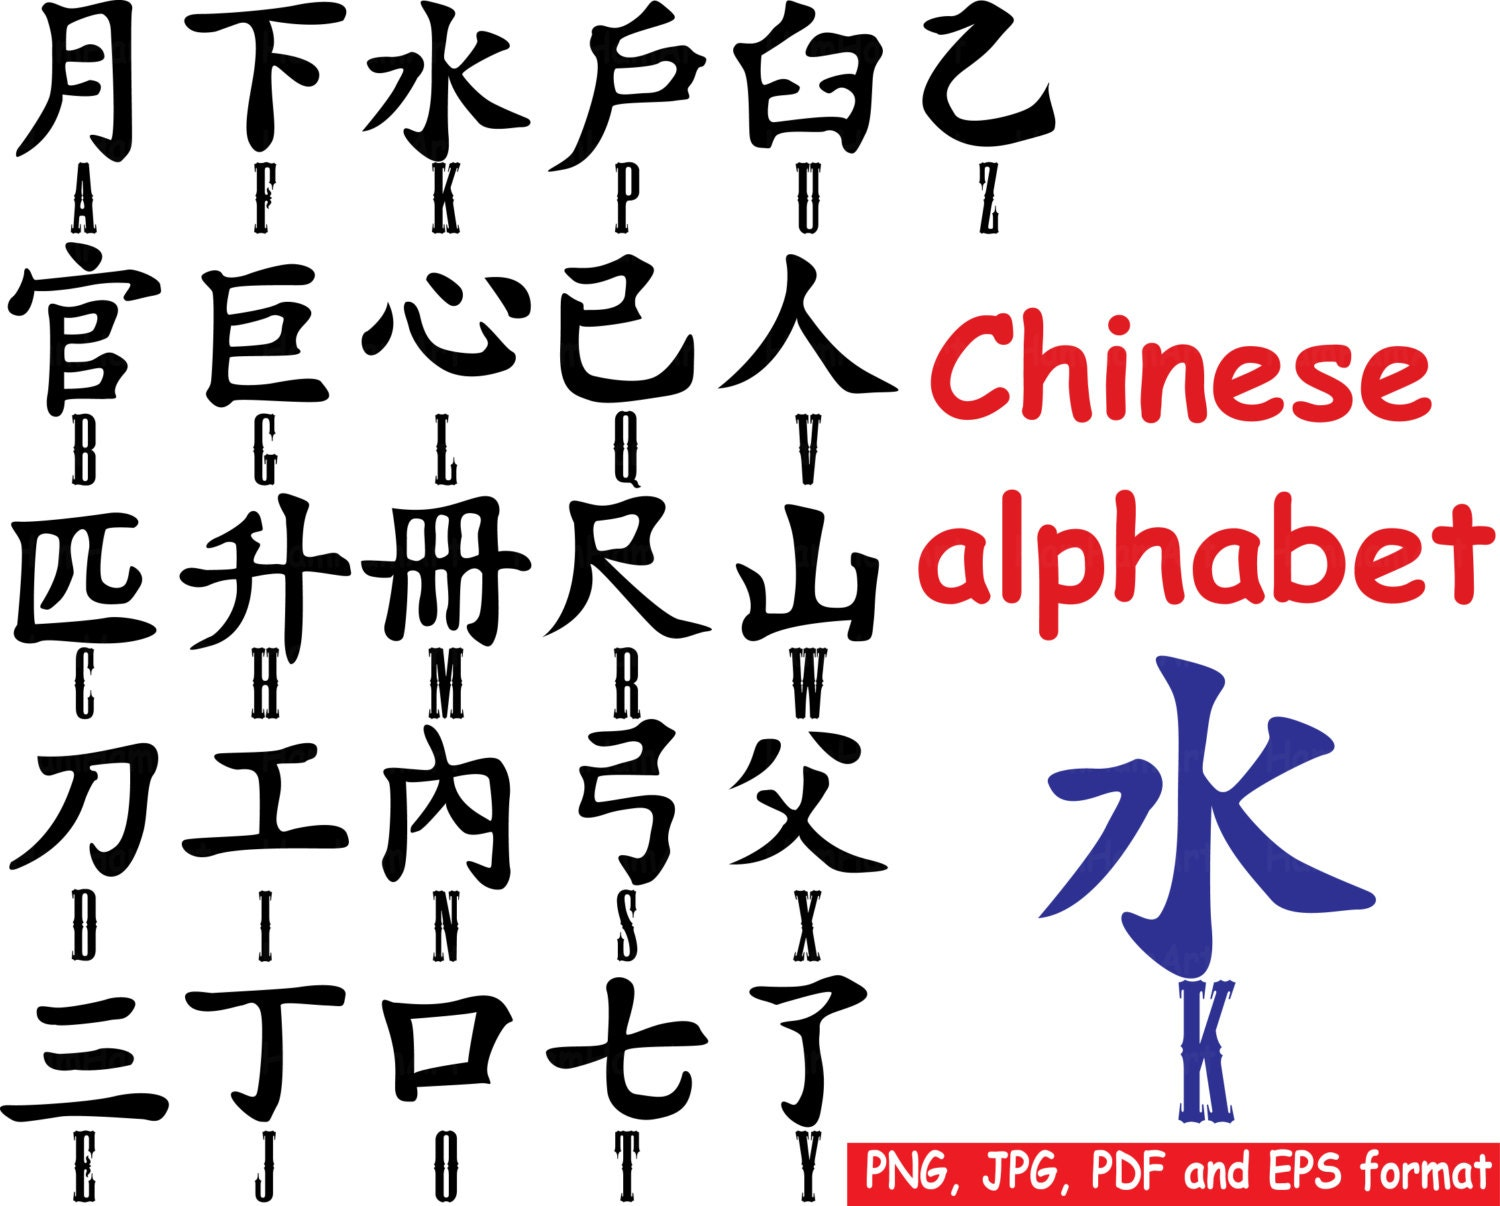 How to Convert English to Chinese Writing